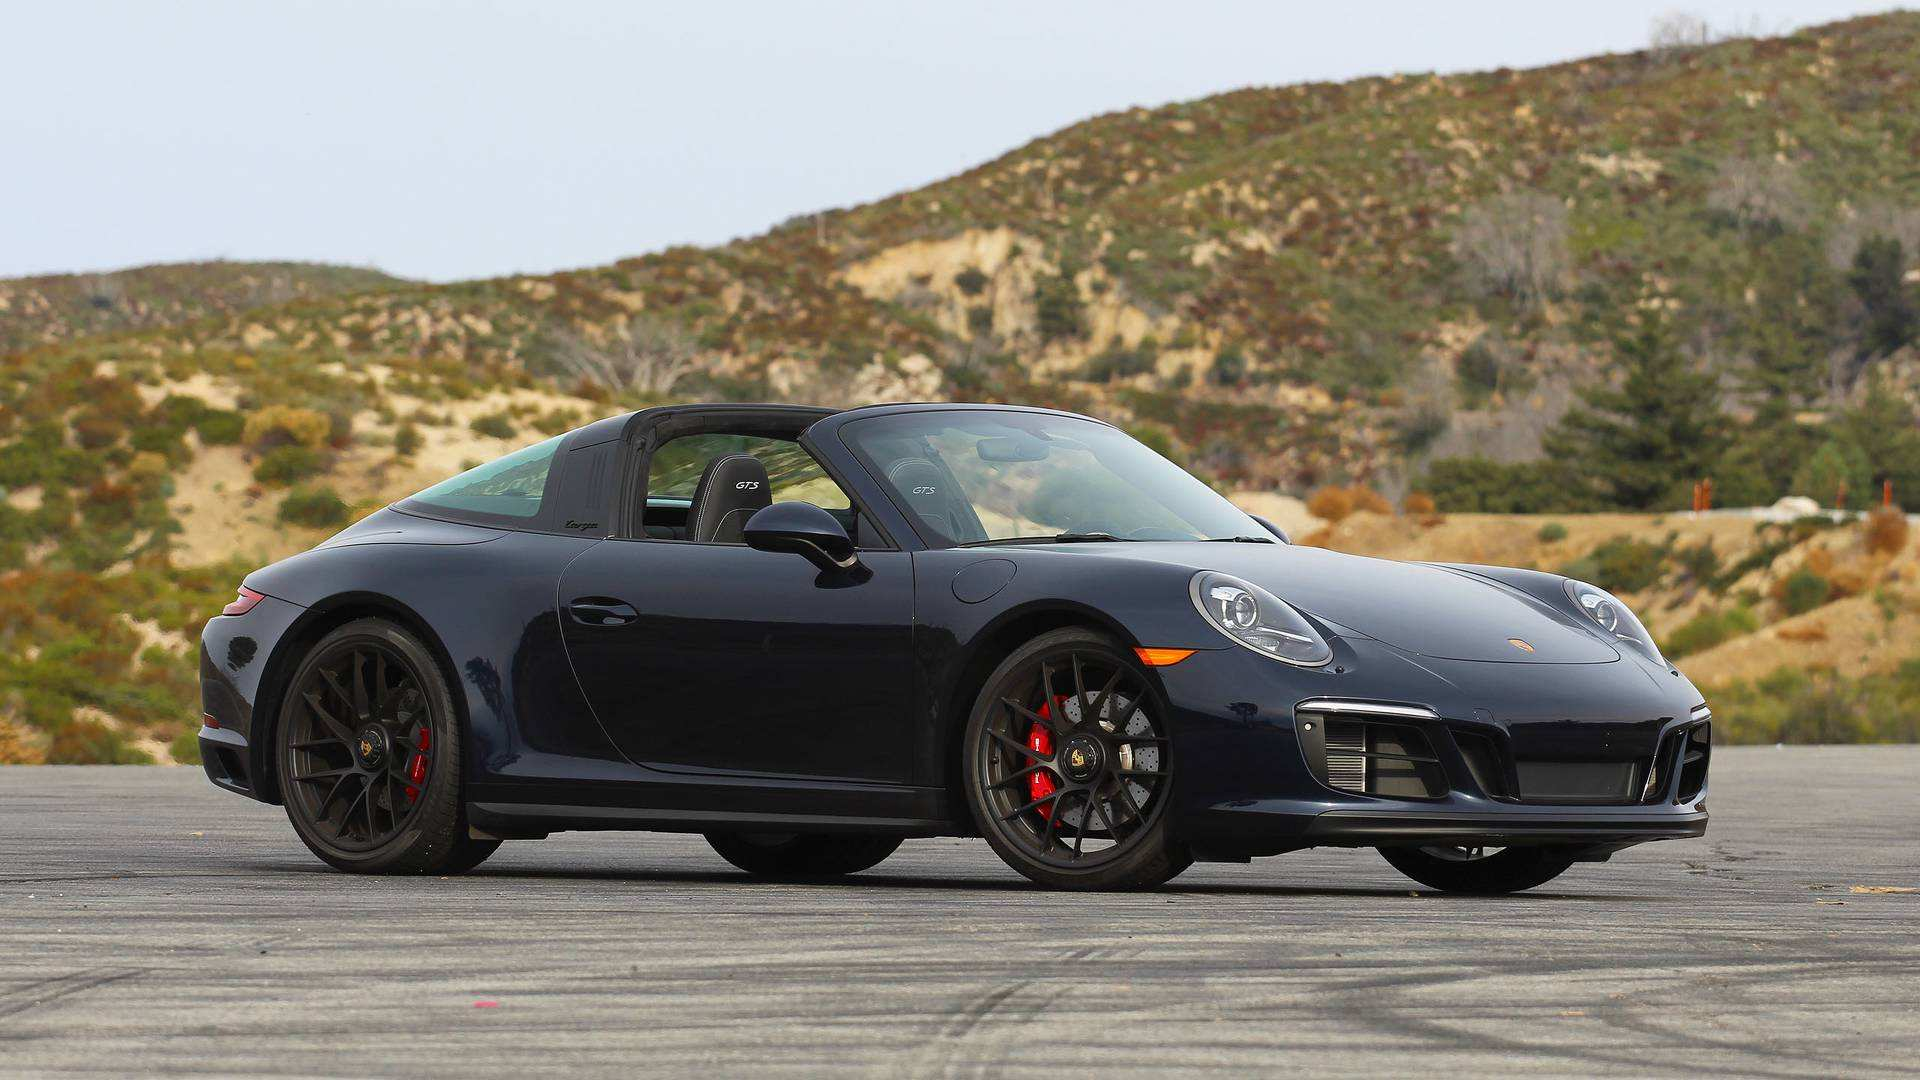 40 Best Review 2019 Porsche Targa Gts Specs by 2019 Porsche Targa Gts